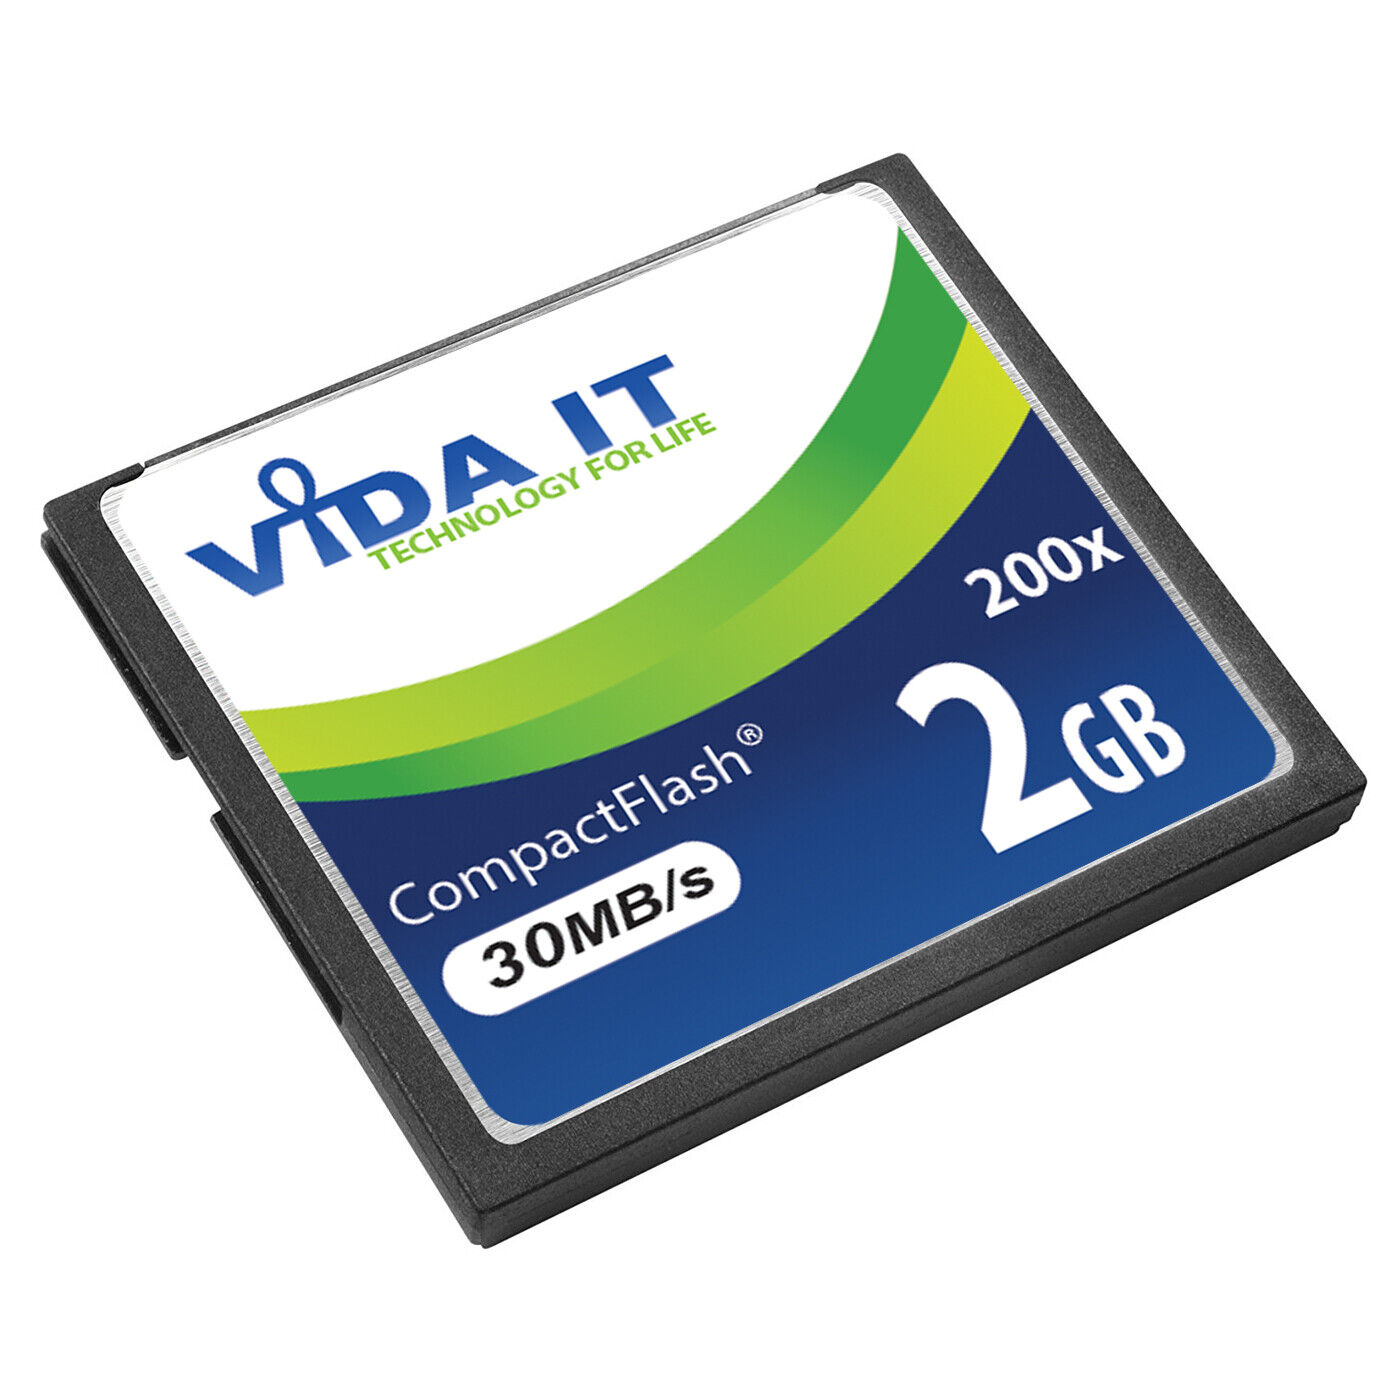 2GB CF Compact Flash Memory Card High-Speed Superior Quality UDMA For Camera UK